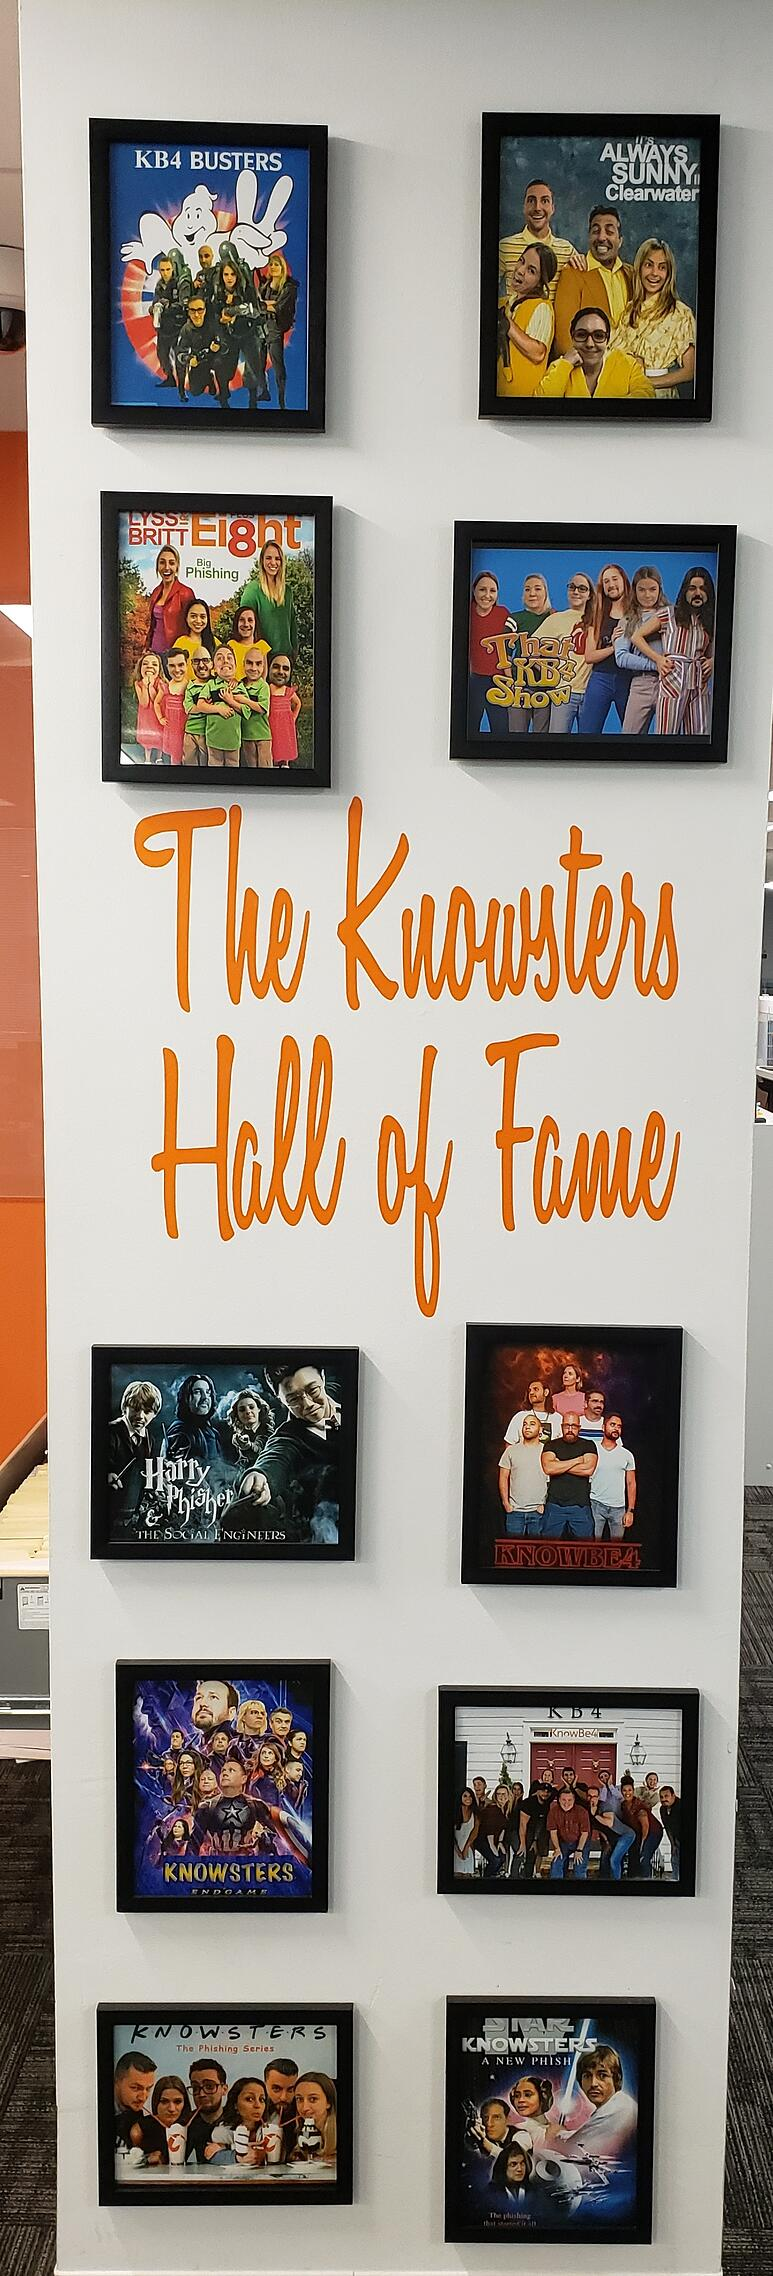 Knowsters Hall Of Fame